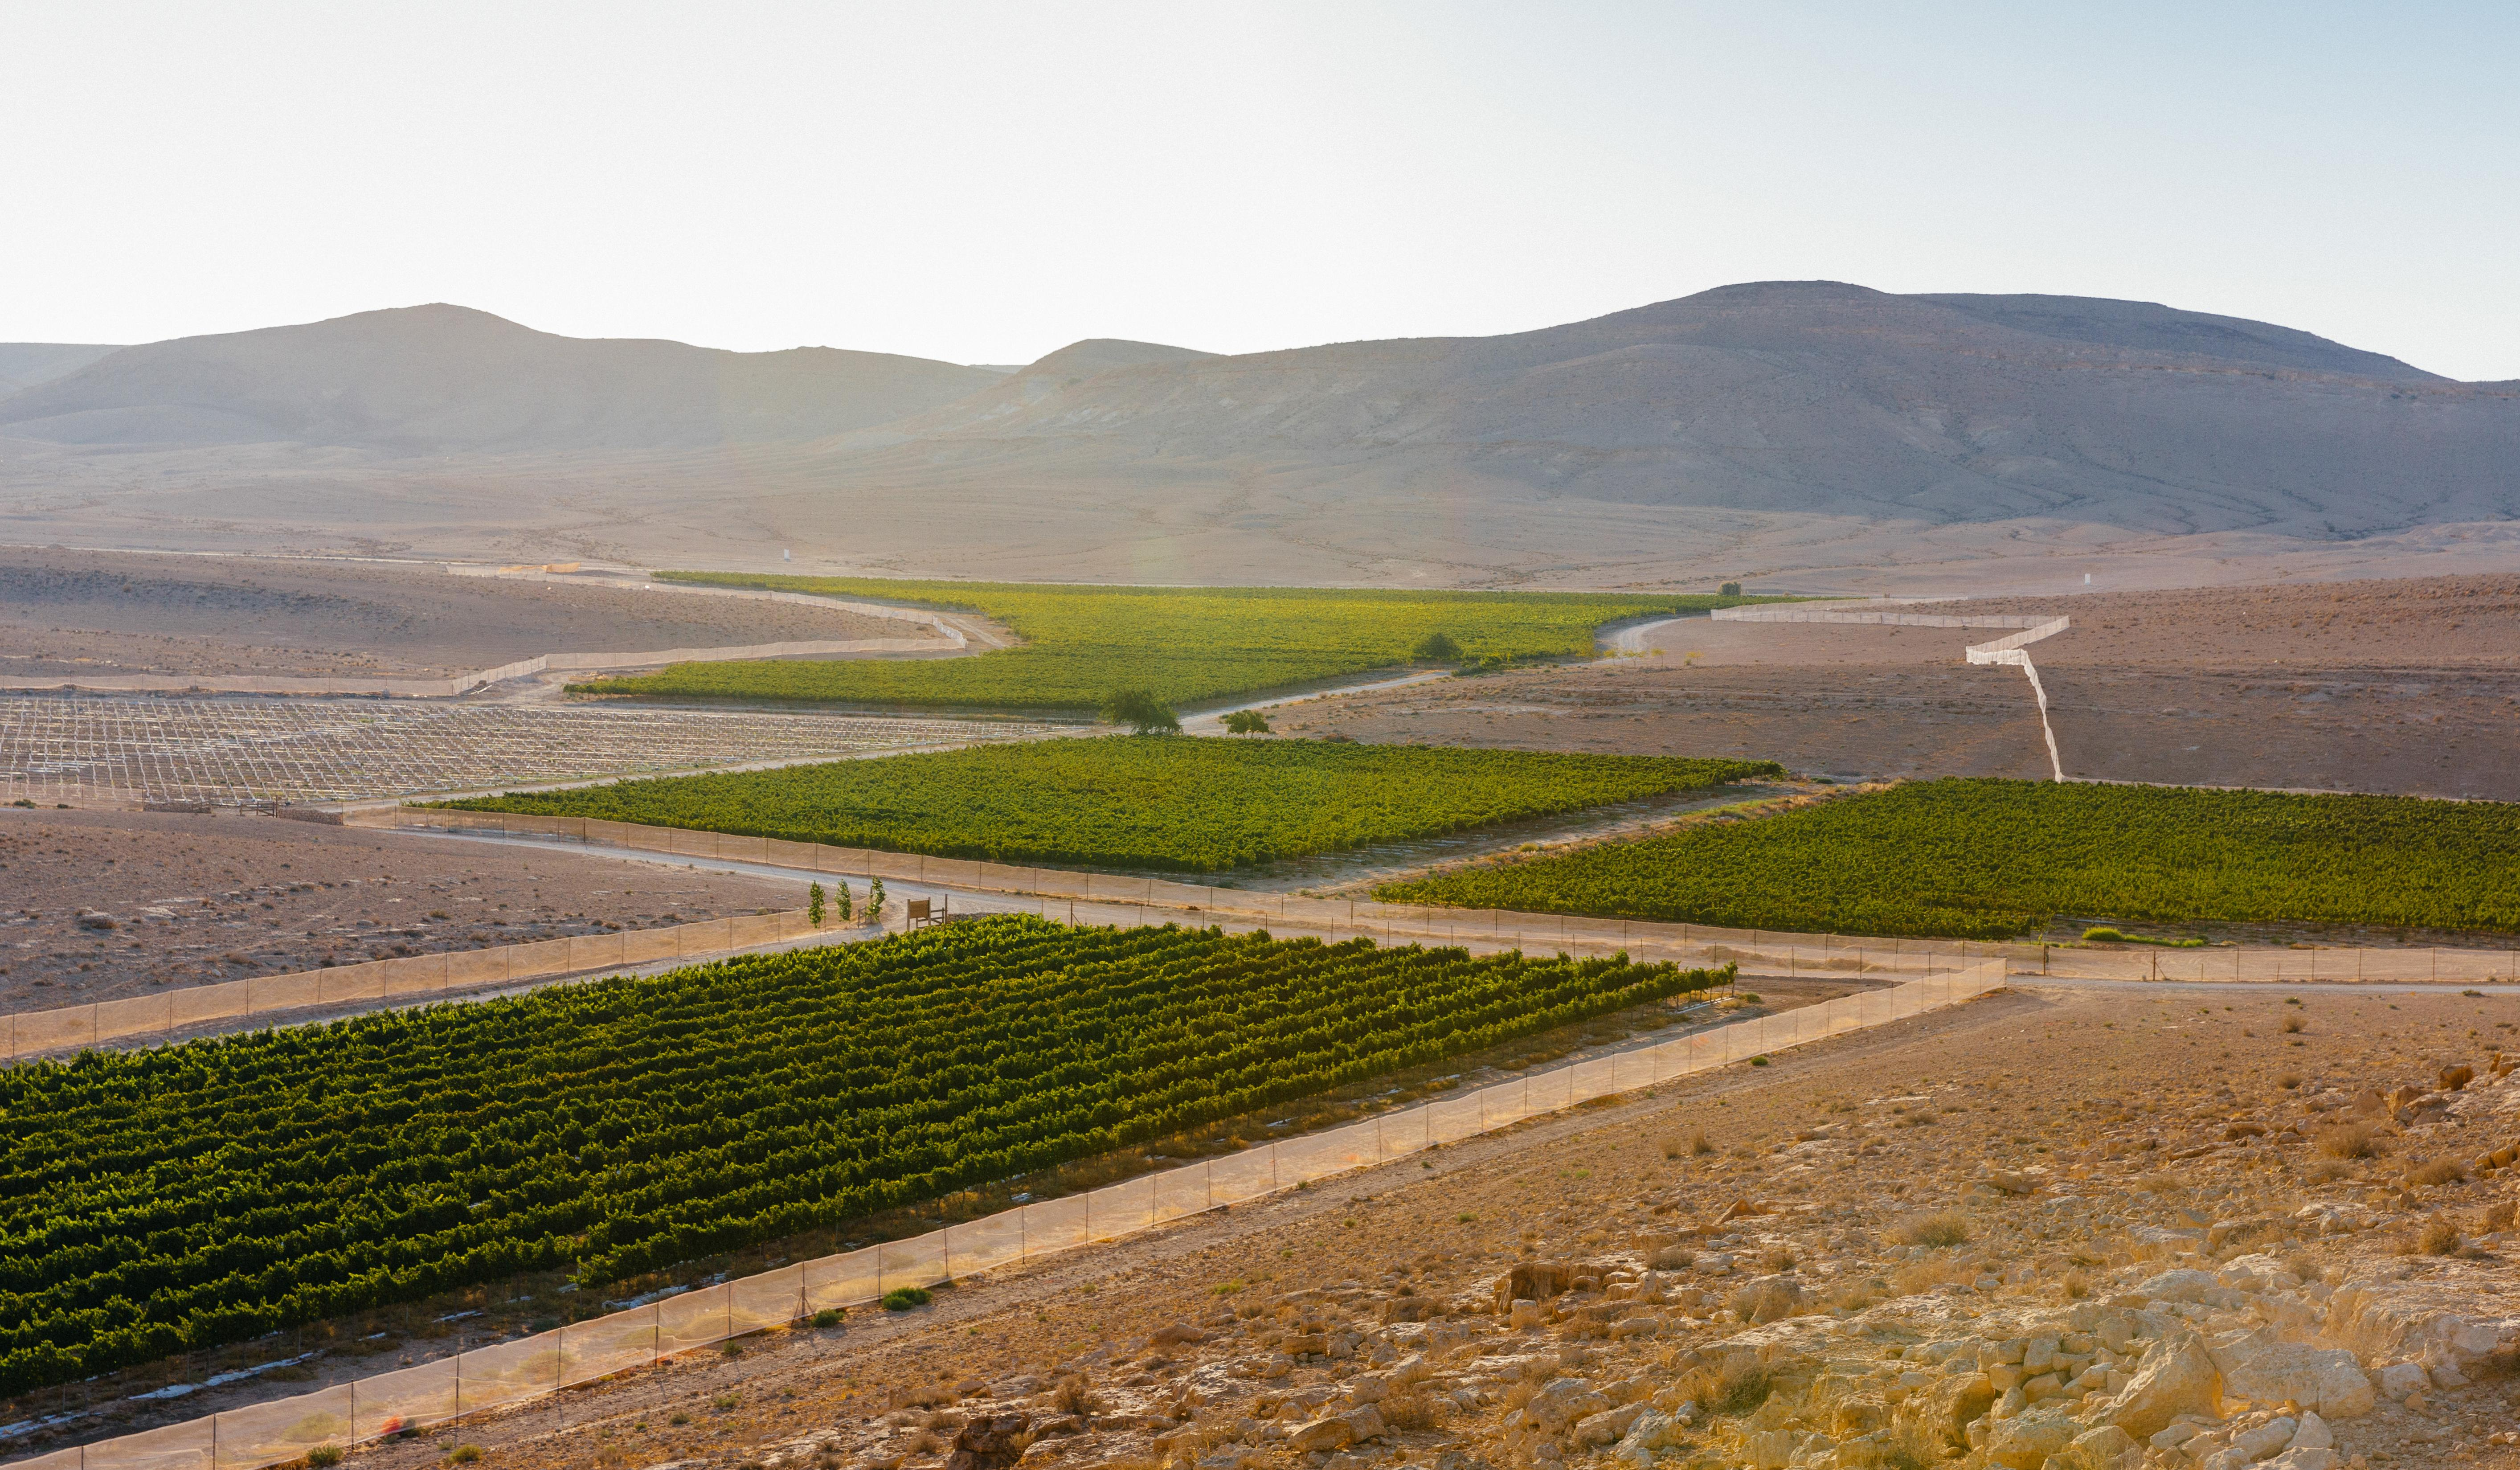 Green patches of Nana Estate Winery in the arid desert.